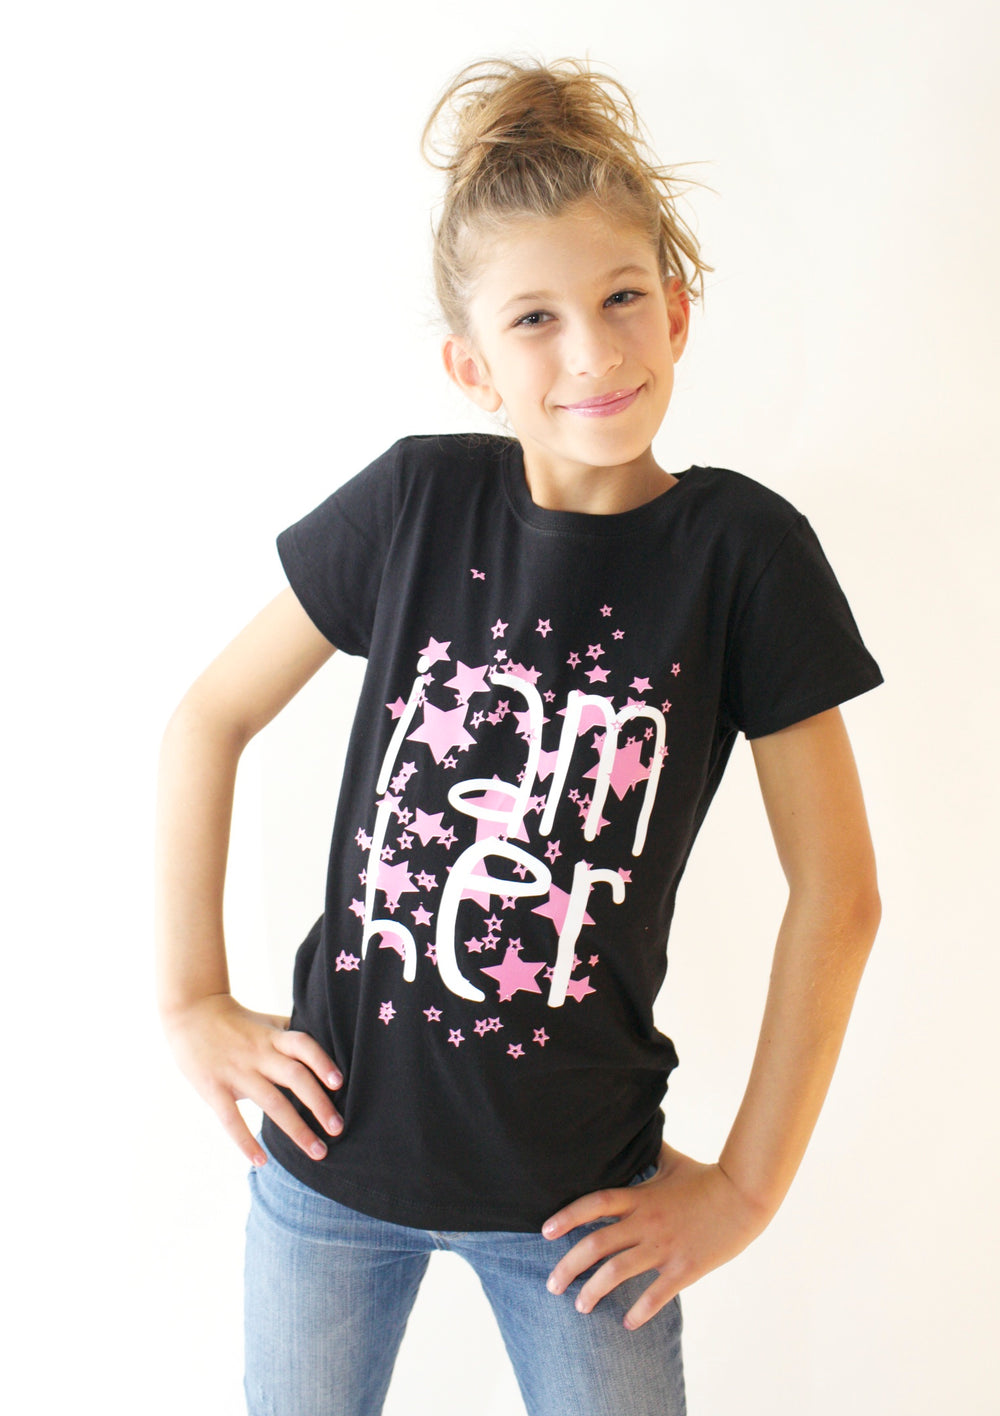 Girl wearing black graphic tee for girls with saying, I AM HER. Girls tees designed for her because it is never too early or too late for her to know her value and worth.